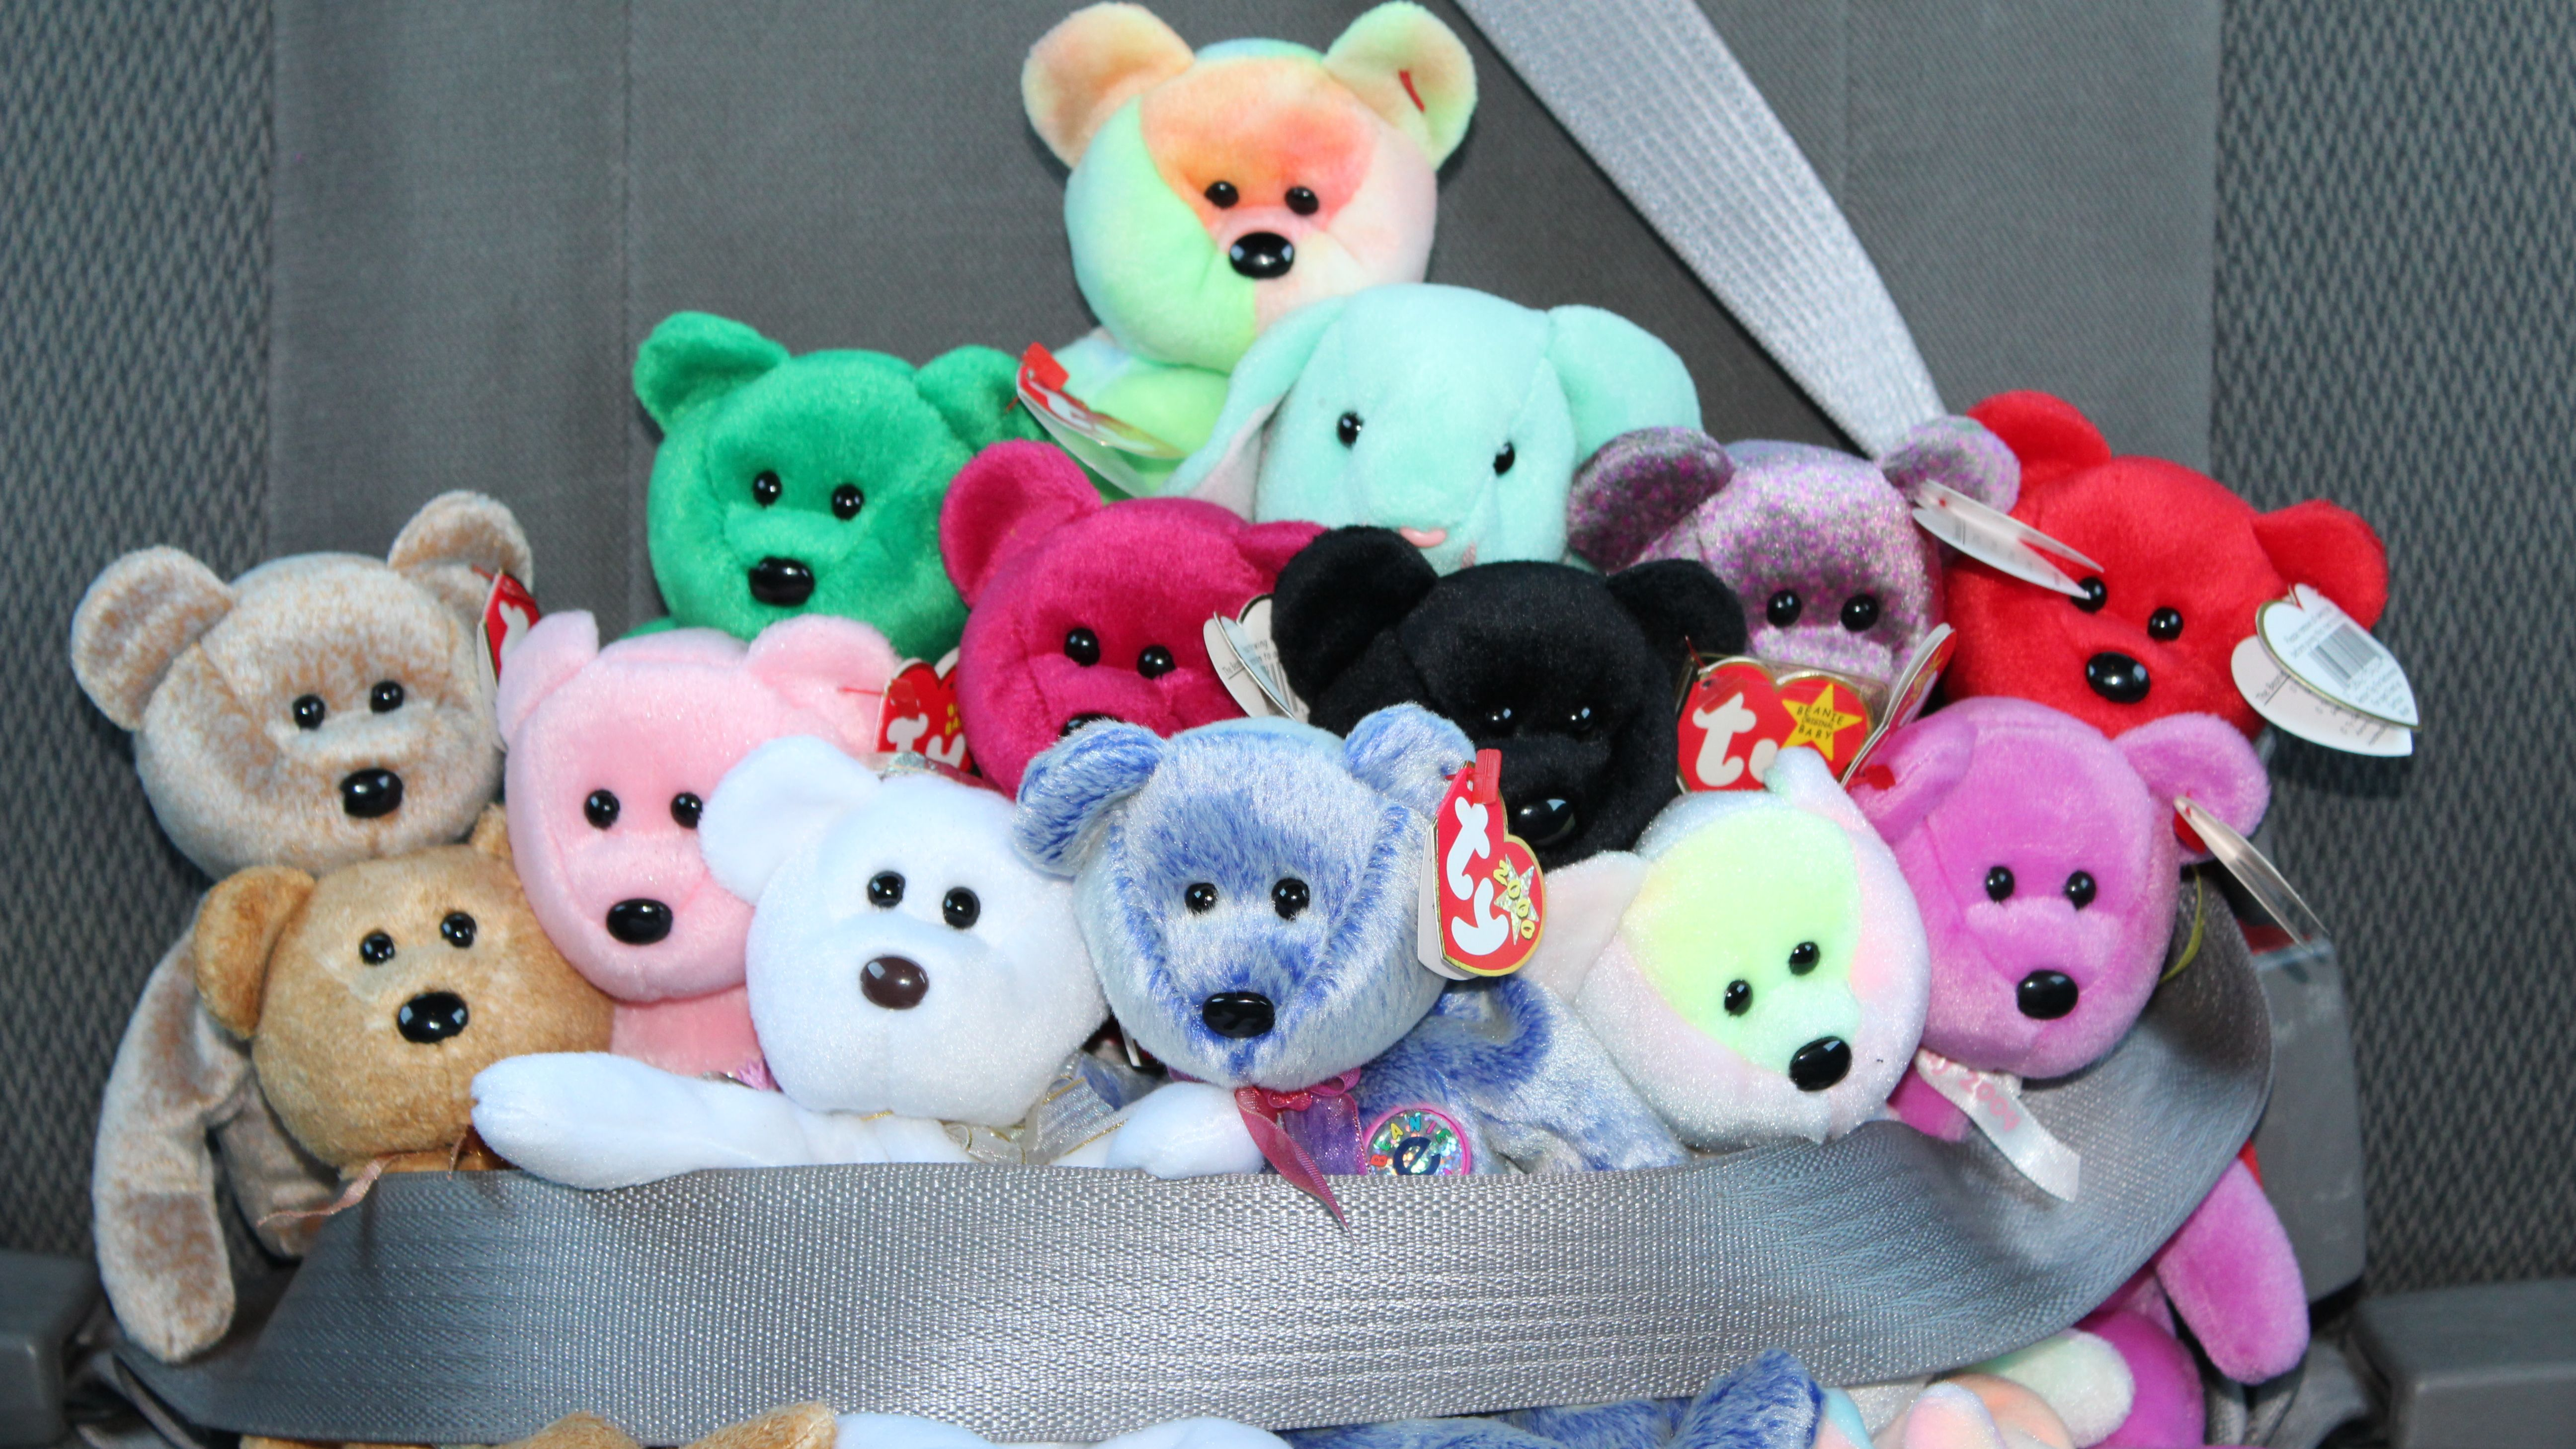 fdbb5f7f9 The 10 Most Valuable Beanie Babies That Could Be Hiding in Your ...